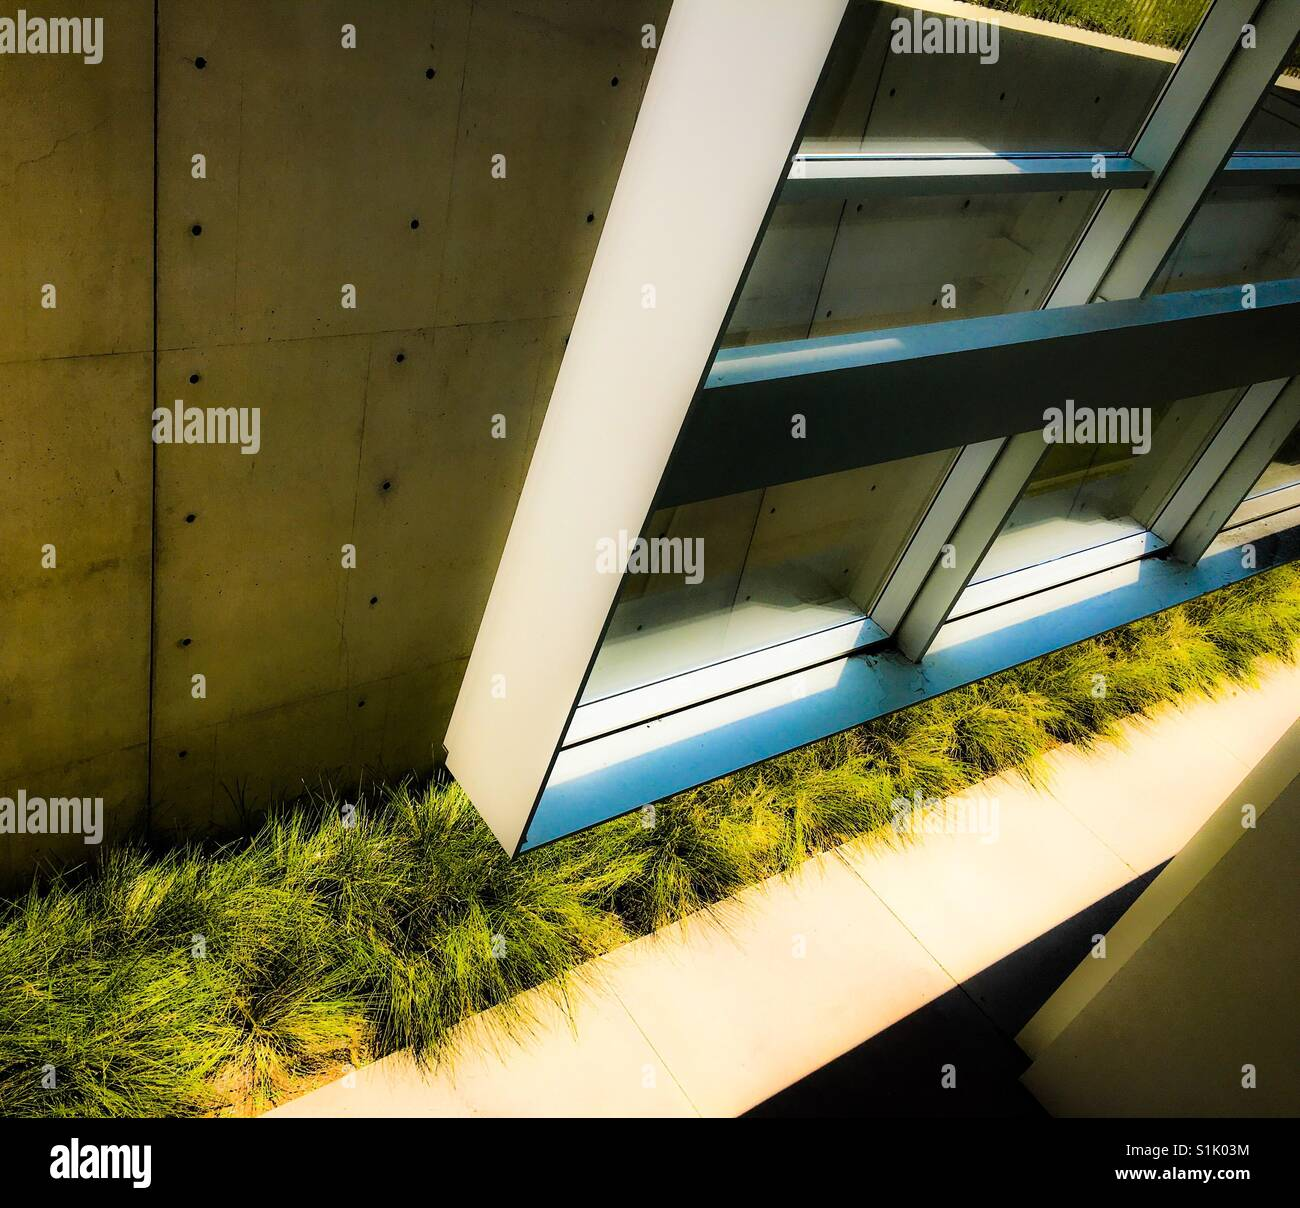 Surreal modern architecture glass building window looking suspended - Stock Image